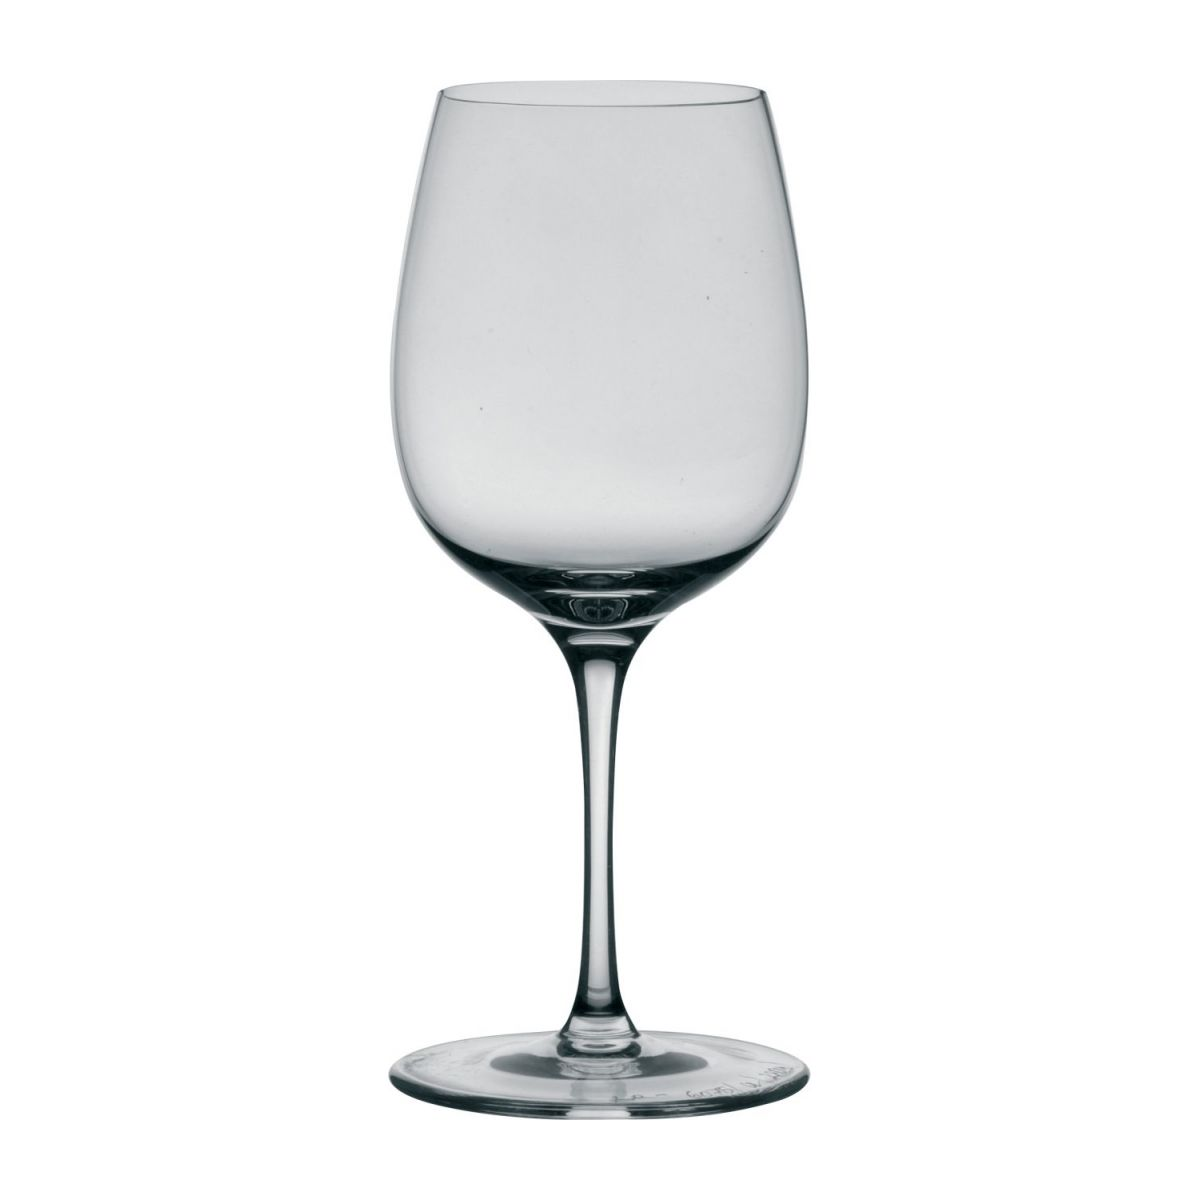 Photo De Verre De Vin Vienna Lot De 6 Verres à Vin 32cl En Verre Trempé